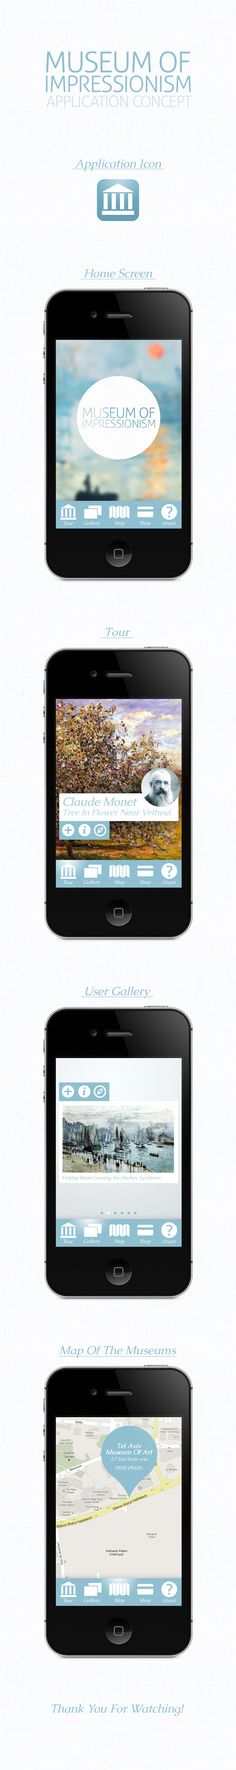 Museum Of Impressionism App Concept - by Denis Korytchenko